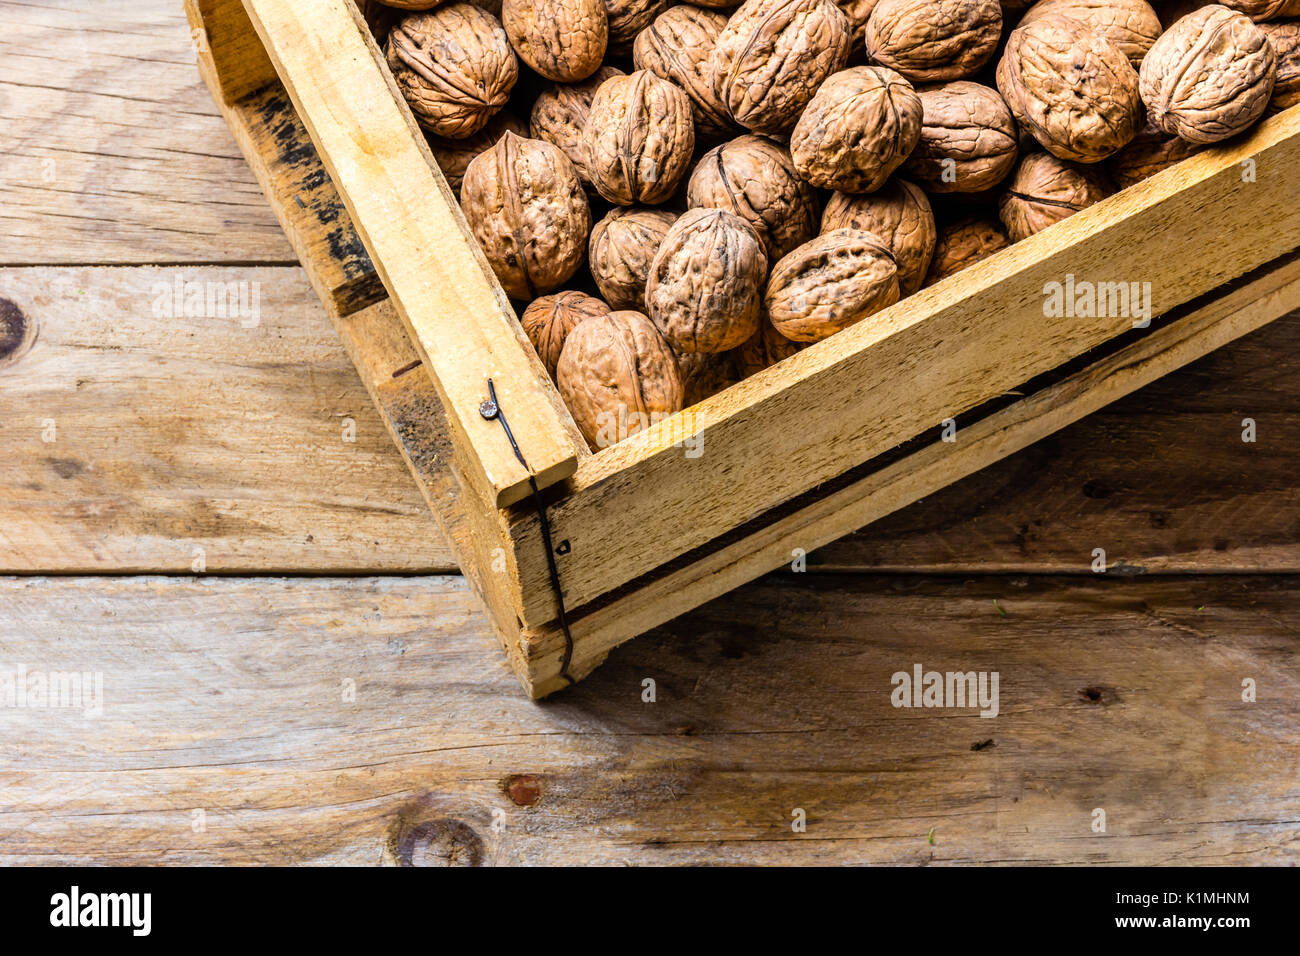 Box of walnuts on wooden background. Harvest concept - Stock Image